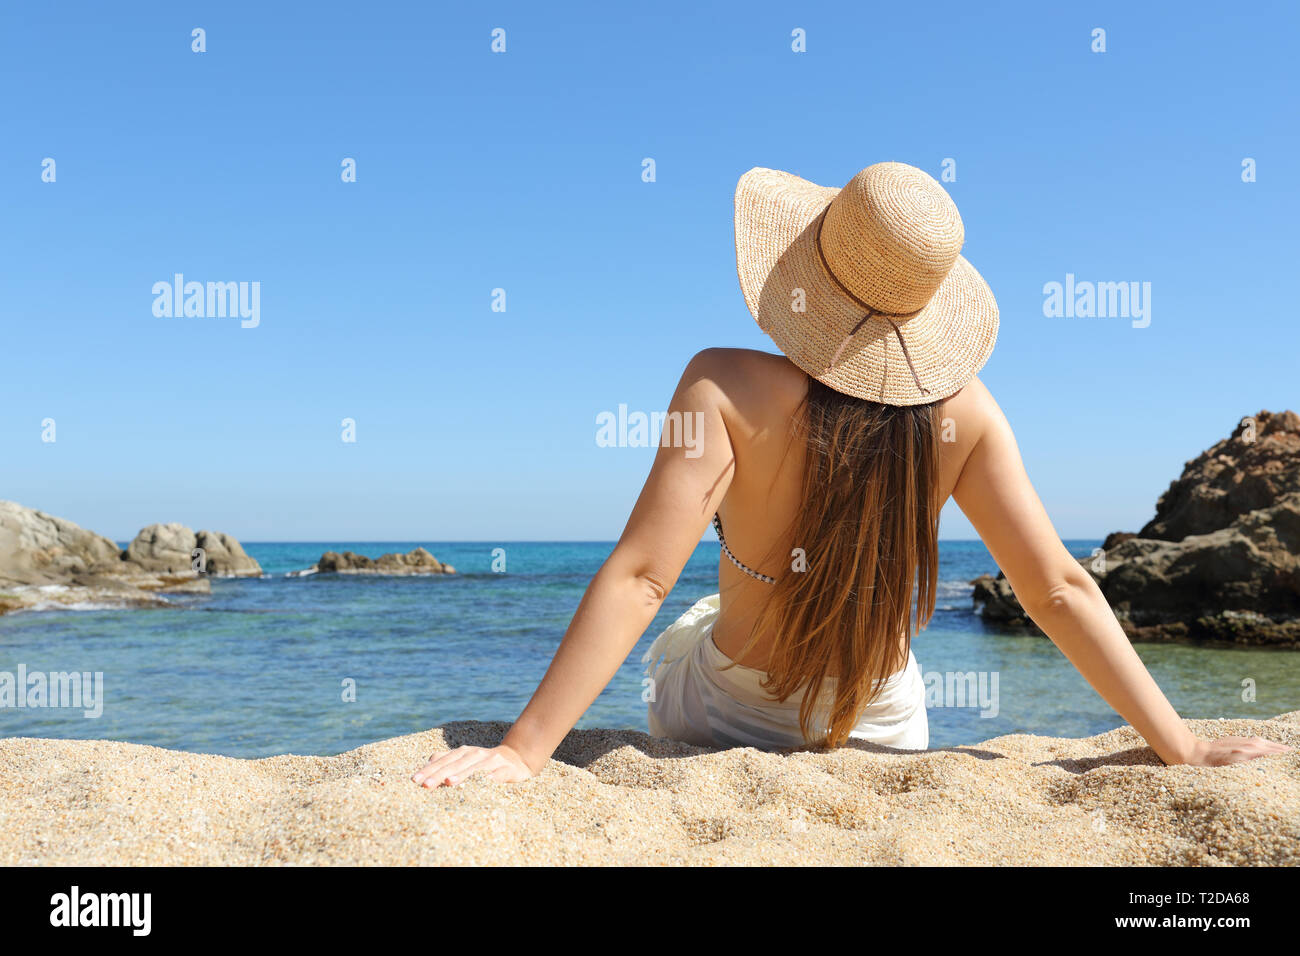 Back view portrait of a sunbather relaxing sitting on the sand of the beach on summer vacation - Stock Image